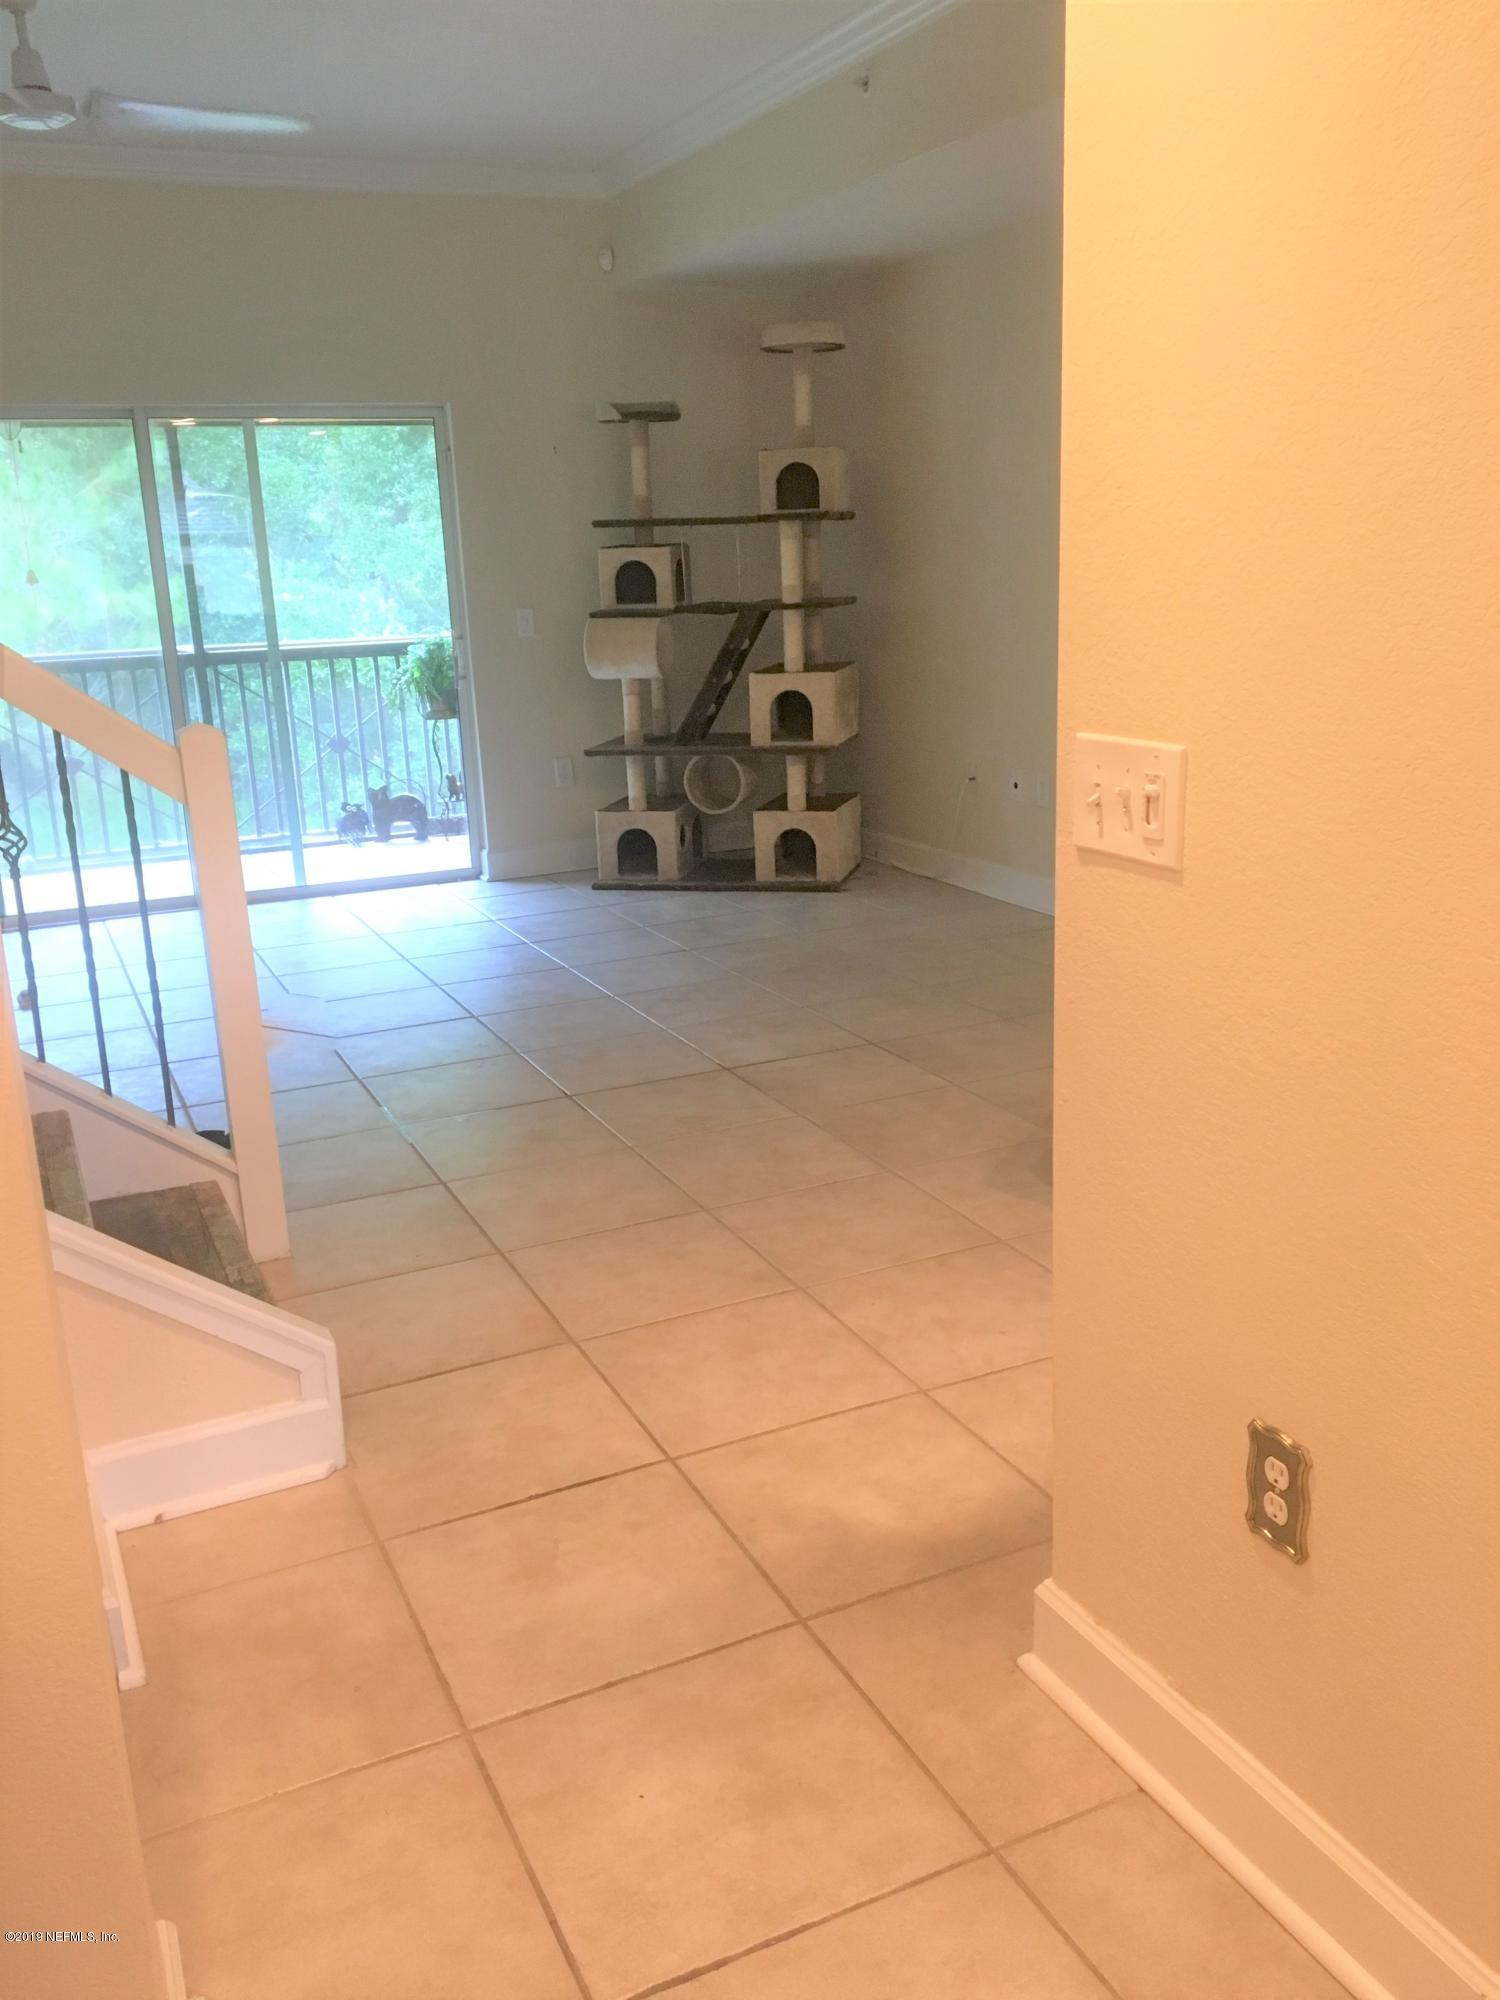 9745 TOUCHTON, JACKSONVILLE, FLORIDA 32246, 2 Bedrooms Bedrooms, ,2 BathroomsBathrooms,Condo,For sale,TOUCHTON,1014123